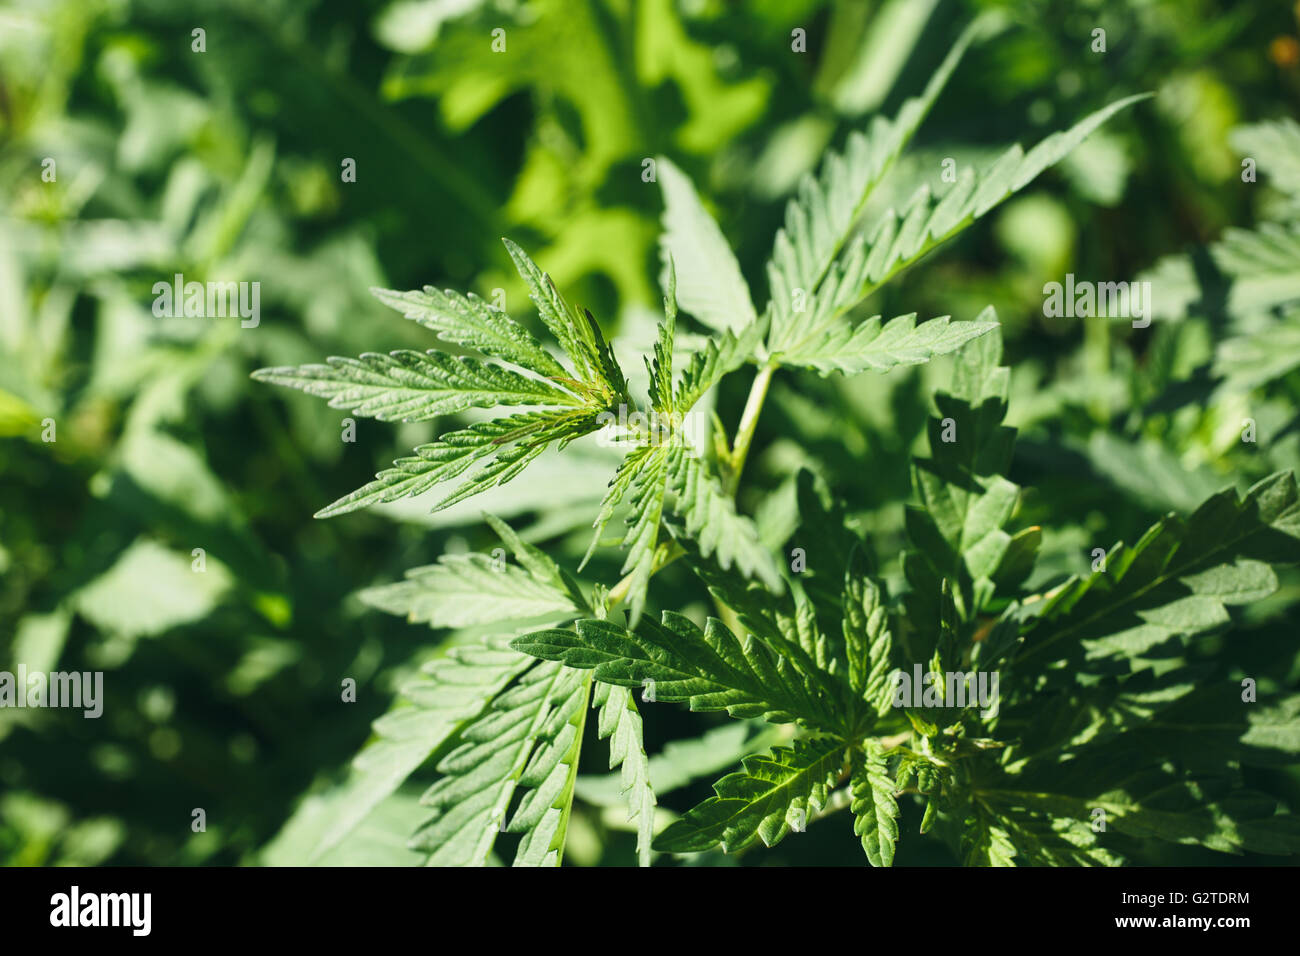 young leaves of cannabis - Stock Image